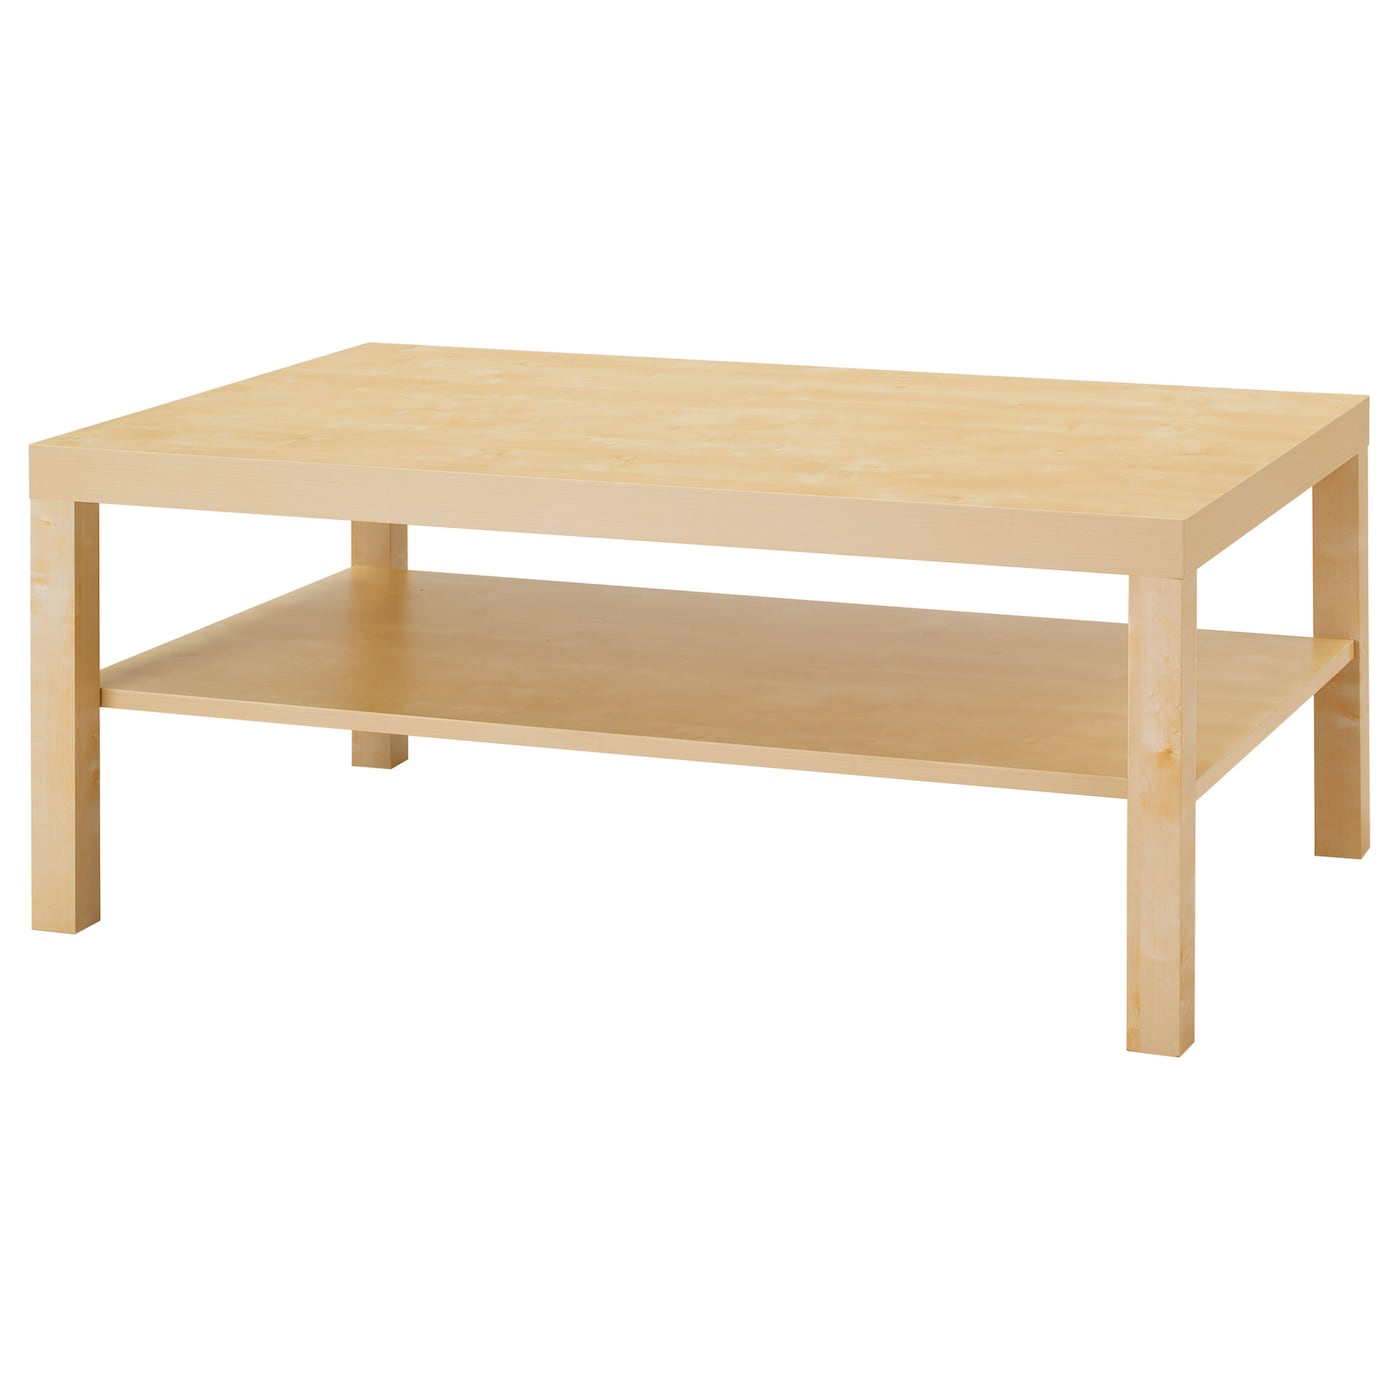 Lack coffee table birch effect 118x78 cm ikea Ikea coffee tables and end tables